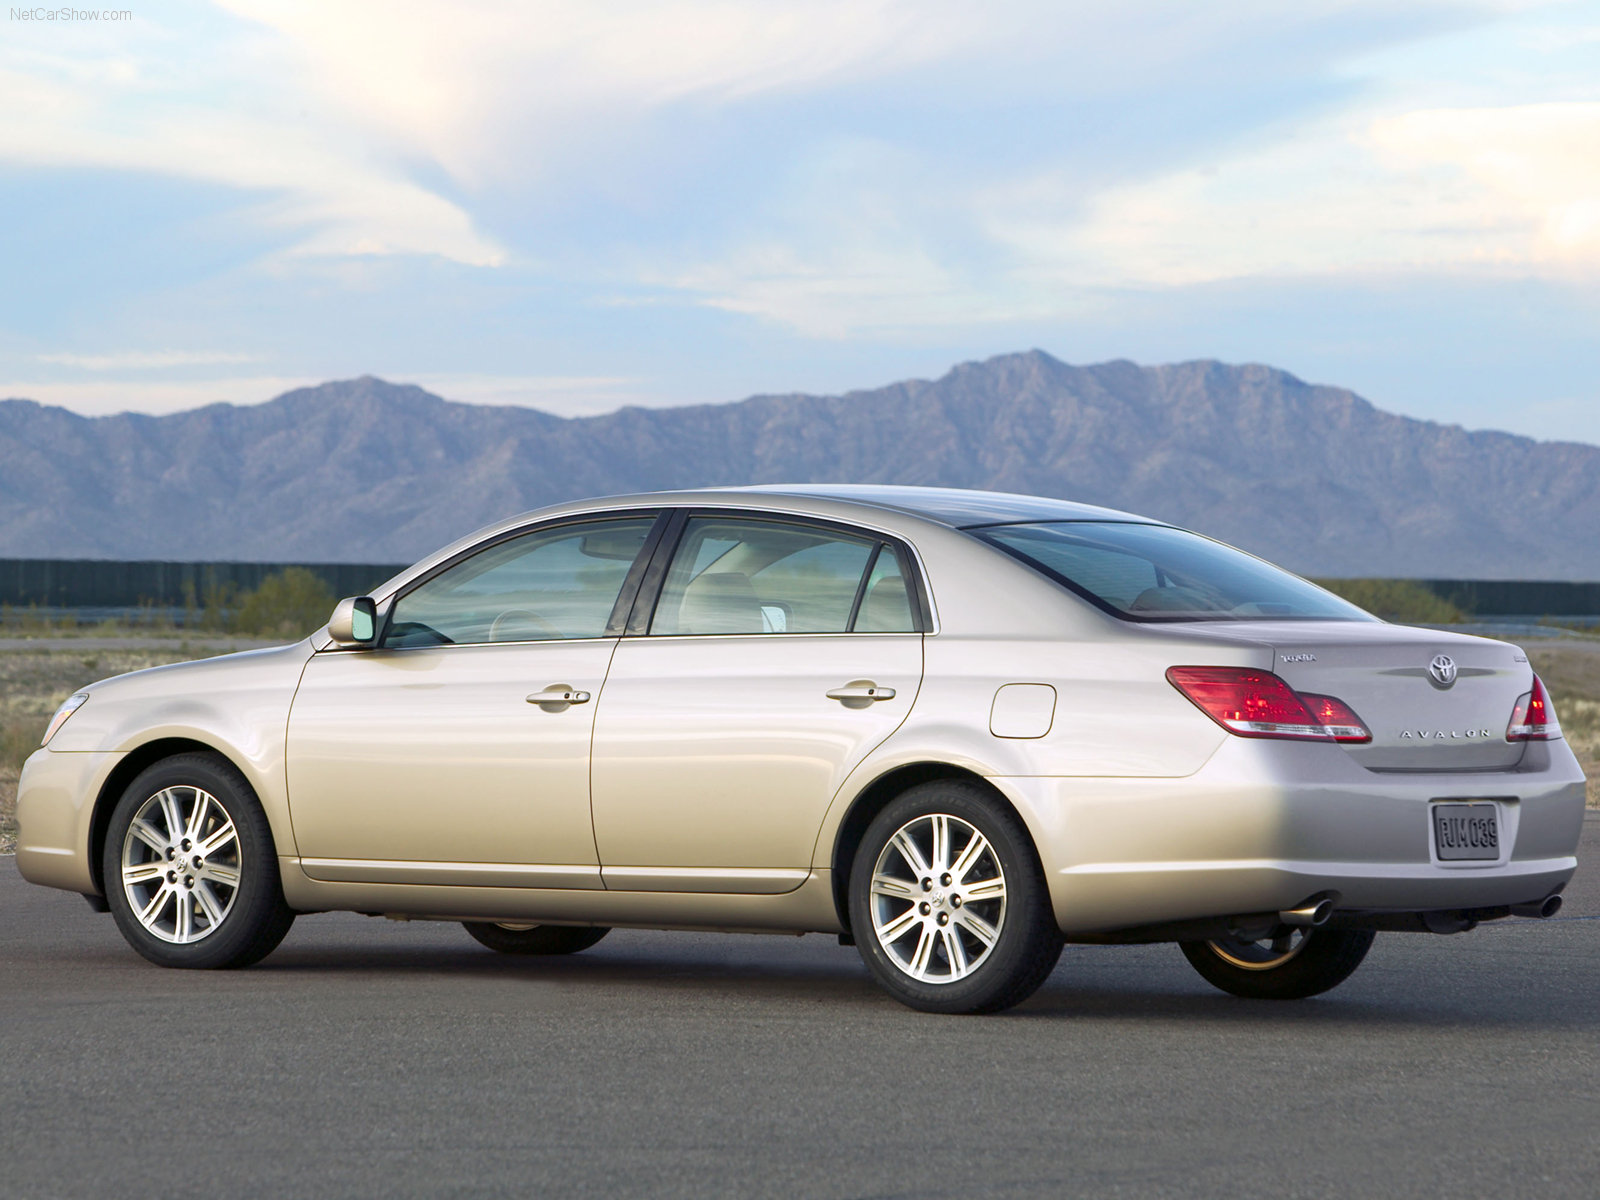 Toyota Avalon photo 31436